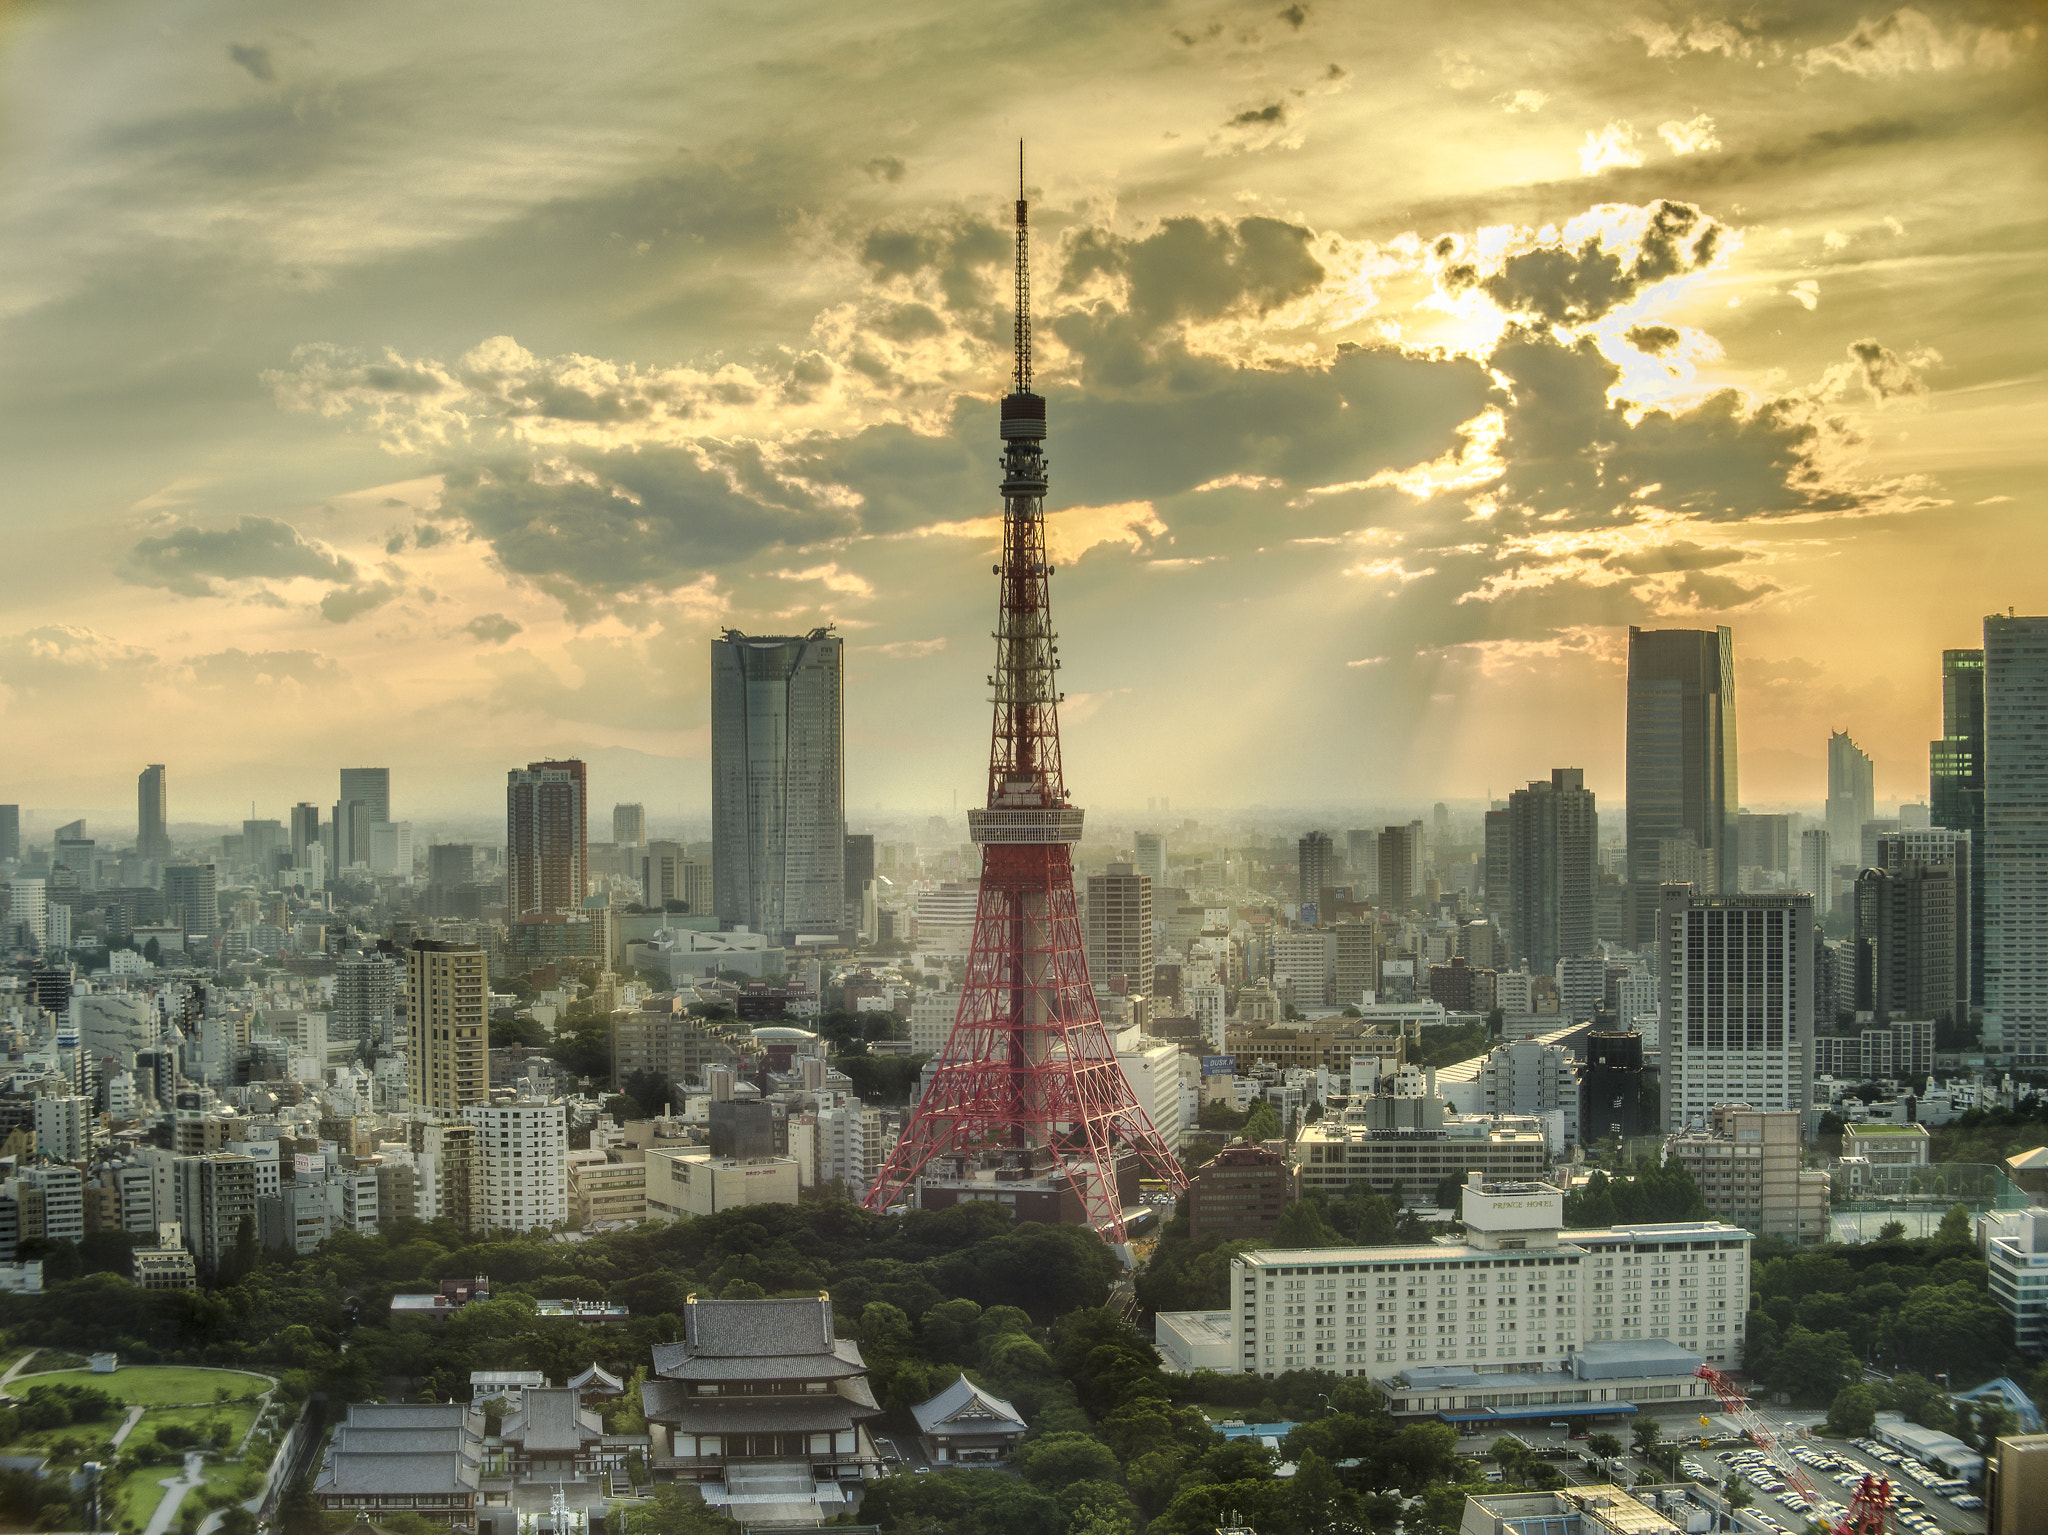 Photograph Tokyo Tower in sunset glow by Yumiko Sato on 500px